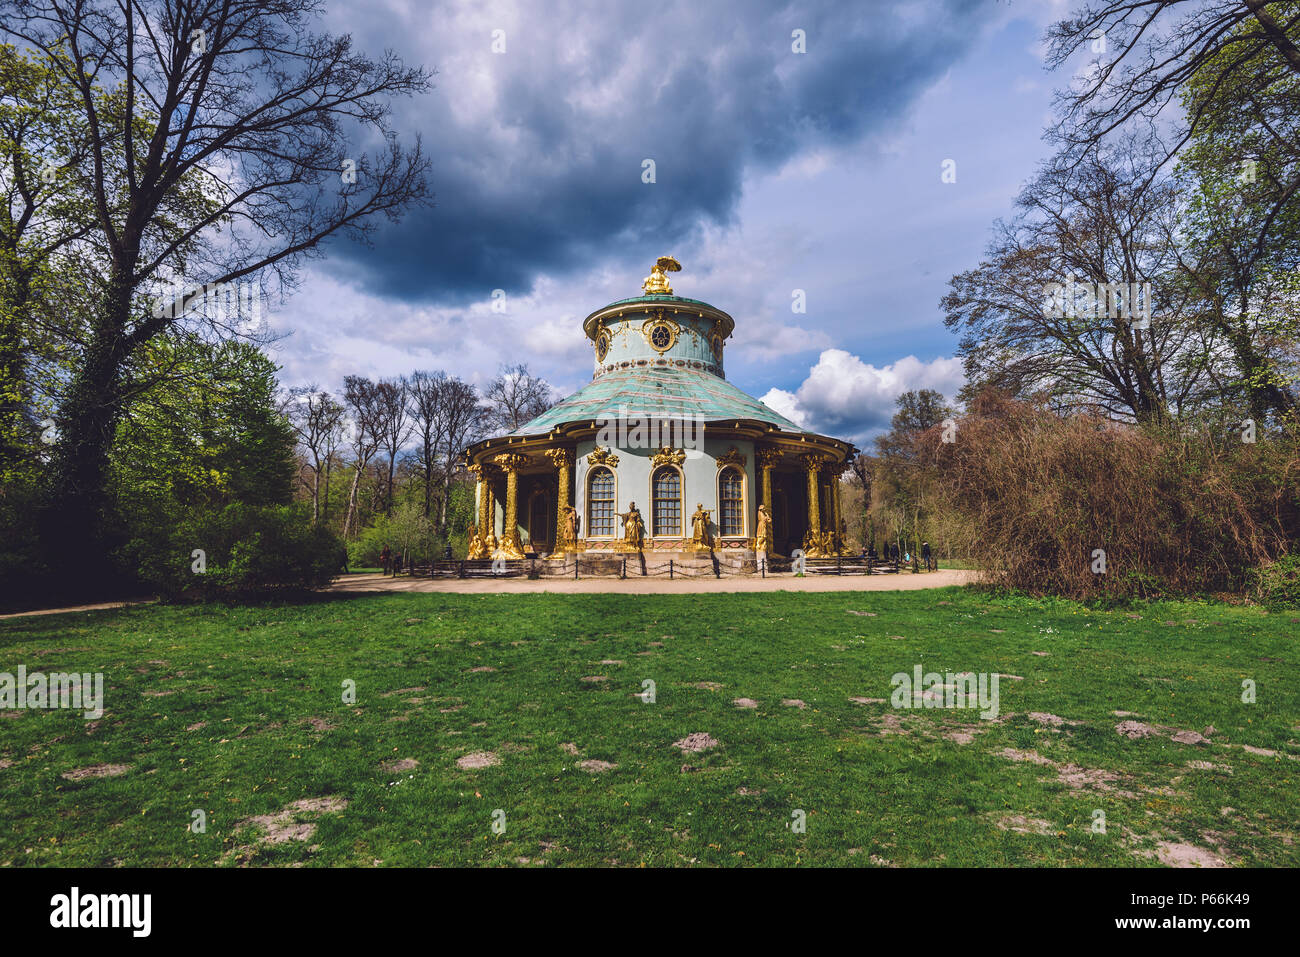 Chinese Tea house Pavilion in Potsdam - Stock Image